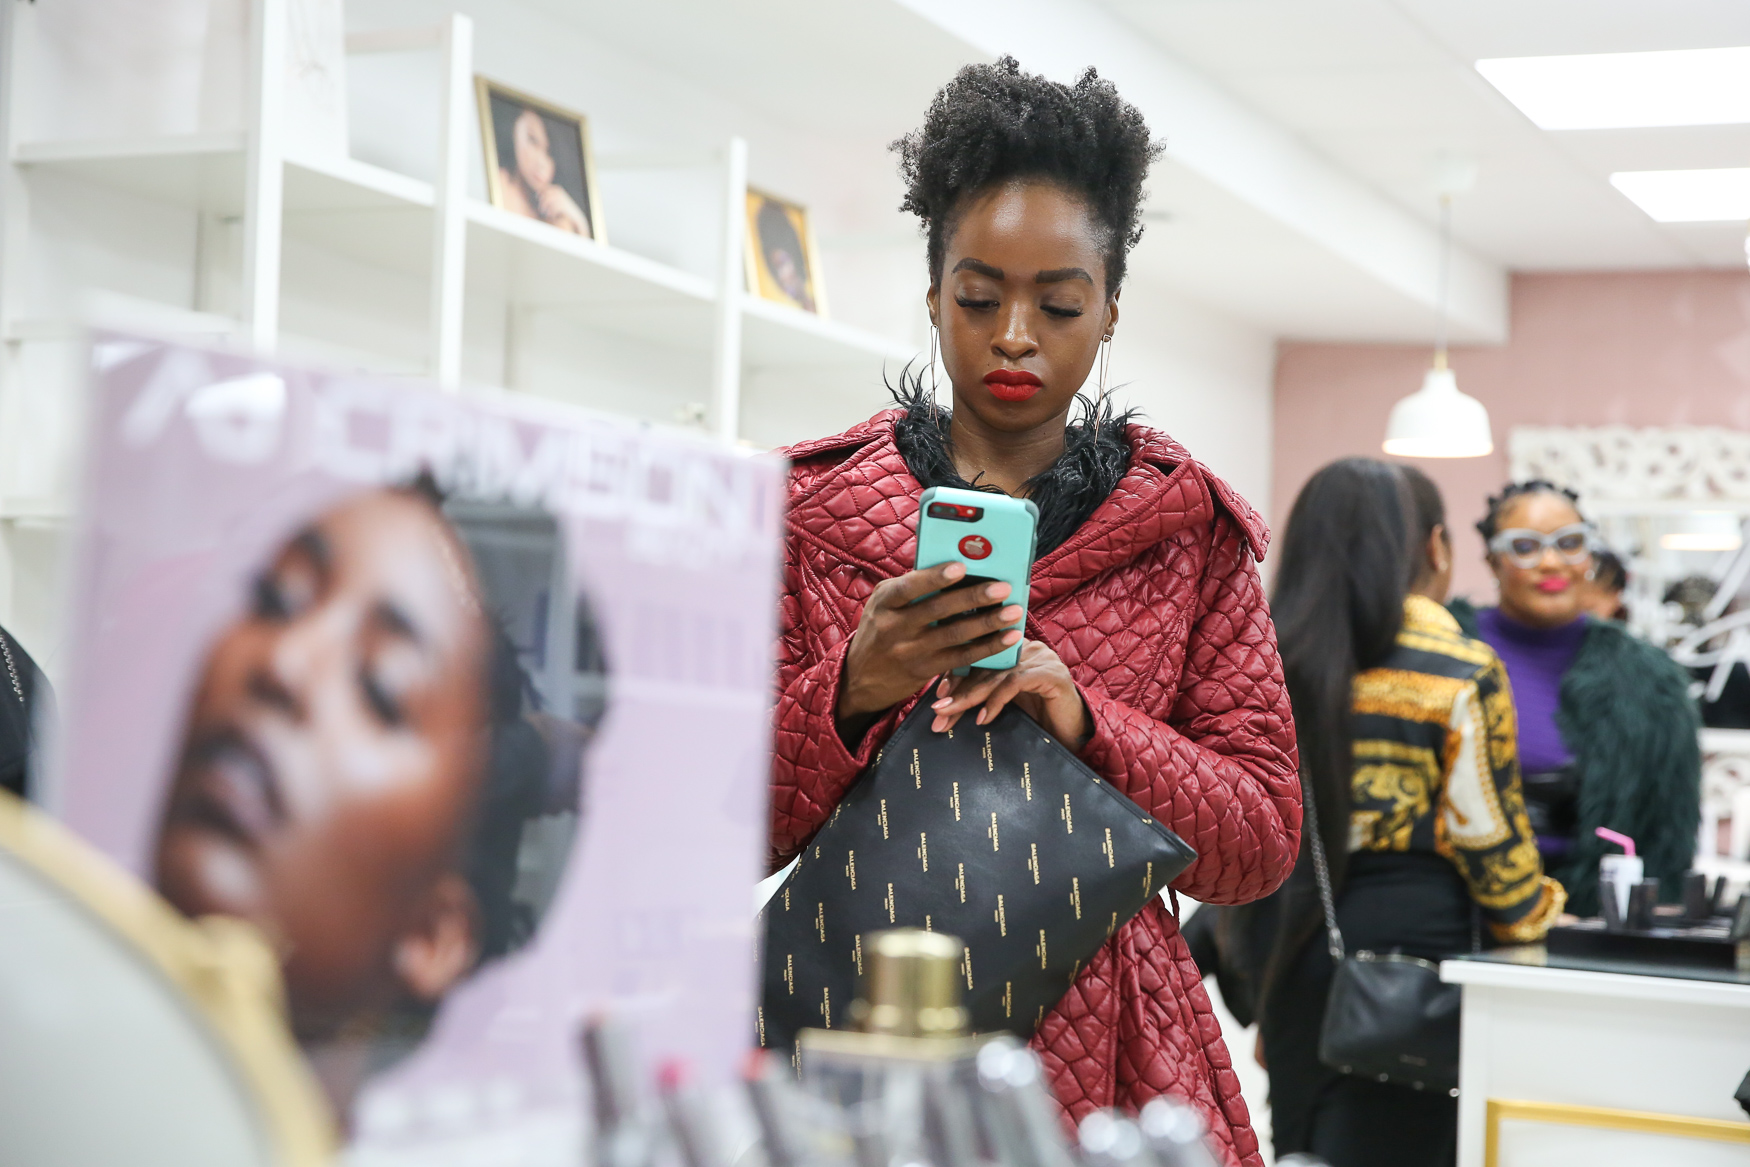 For many women of color, finding beauty products can be a frustrating, alienating and time-consuming experience. Now, there's another option for the women of D.C. - the Brown Beauty Co-op, which opens in Dupont Circle on December 8. The store includes beauty brands that cater to women of color - co-owner Kimberly Smith says that means anyone who identifies as a woman of color, no matter how light or dark their skin is. Smith is a lawyer by training, but she is also the founder of online retailer{ }Marjani Beauty, which caters to women of color.{ }The Brown Beauty Co-op aspires to be more than just a beauty retailer - best friends and co-owners{ }Kimberly Smith and Amaya Smith hope to facilitate events in the space and give local and indie brands a brick and mortar presence.{ } (Amanda Andrade-Rhoades/DC Refined)